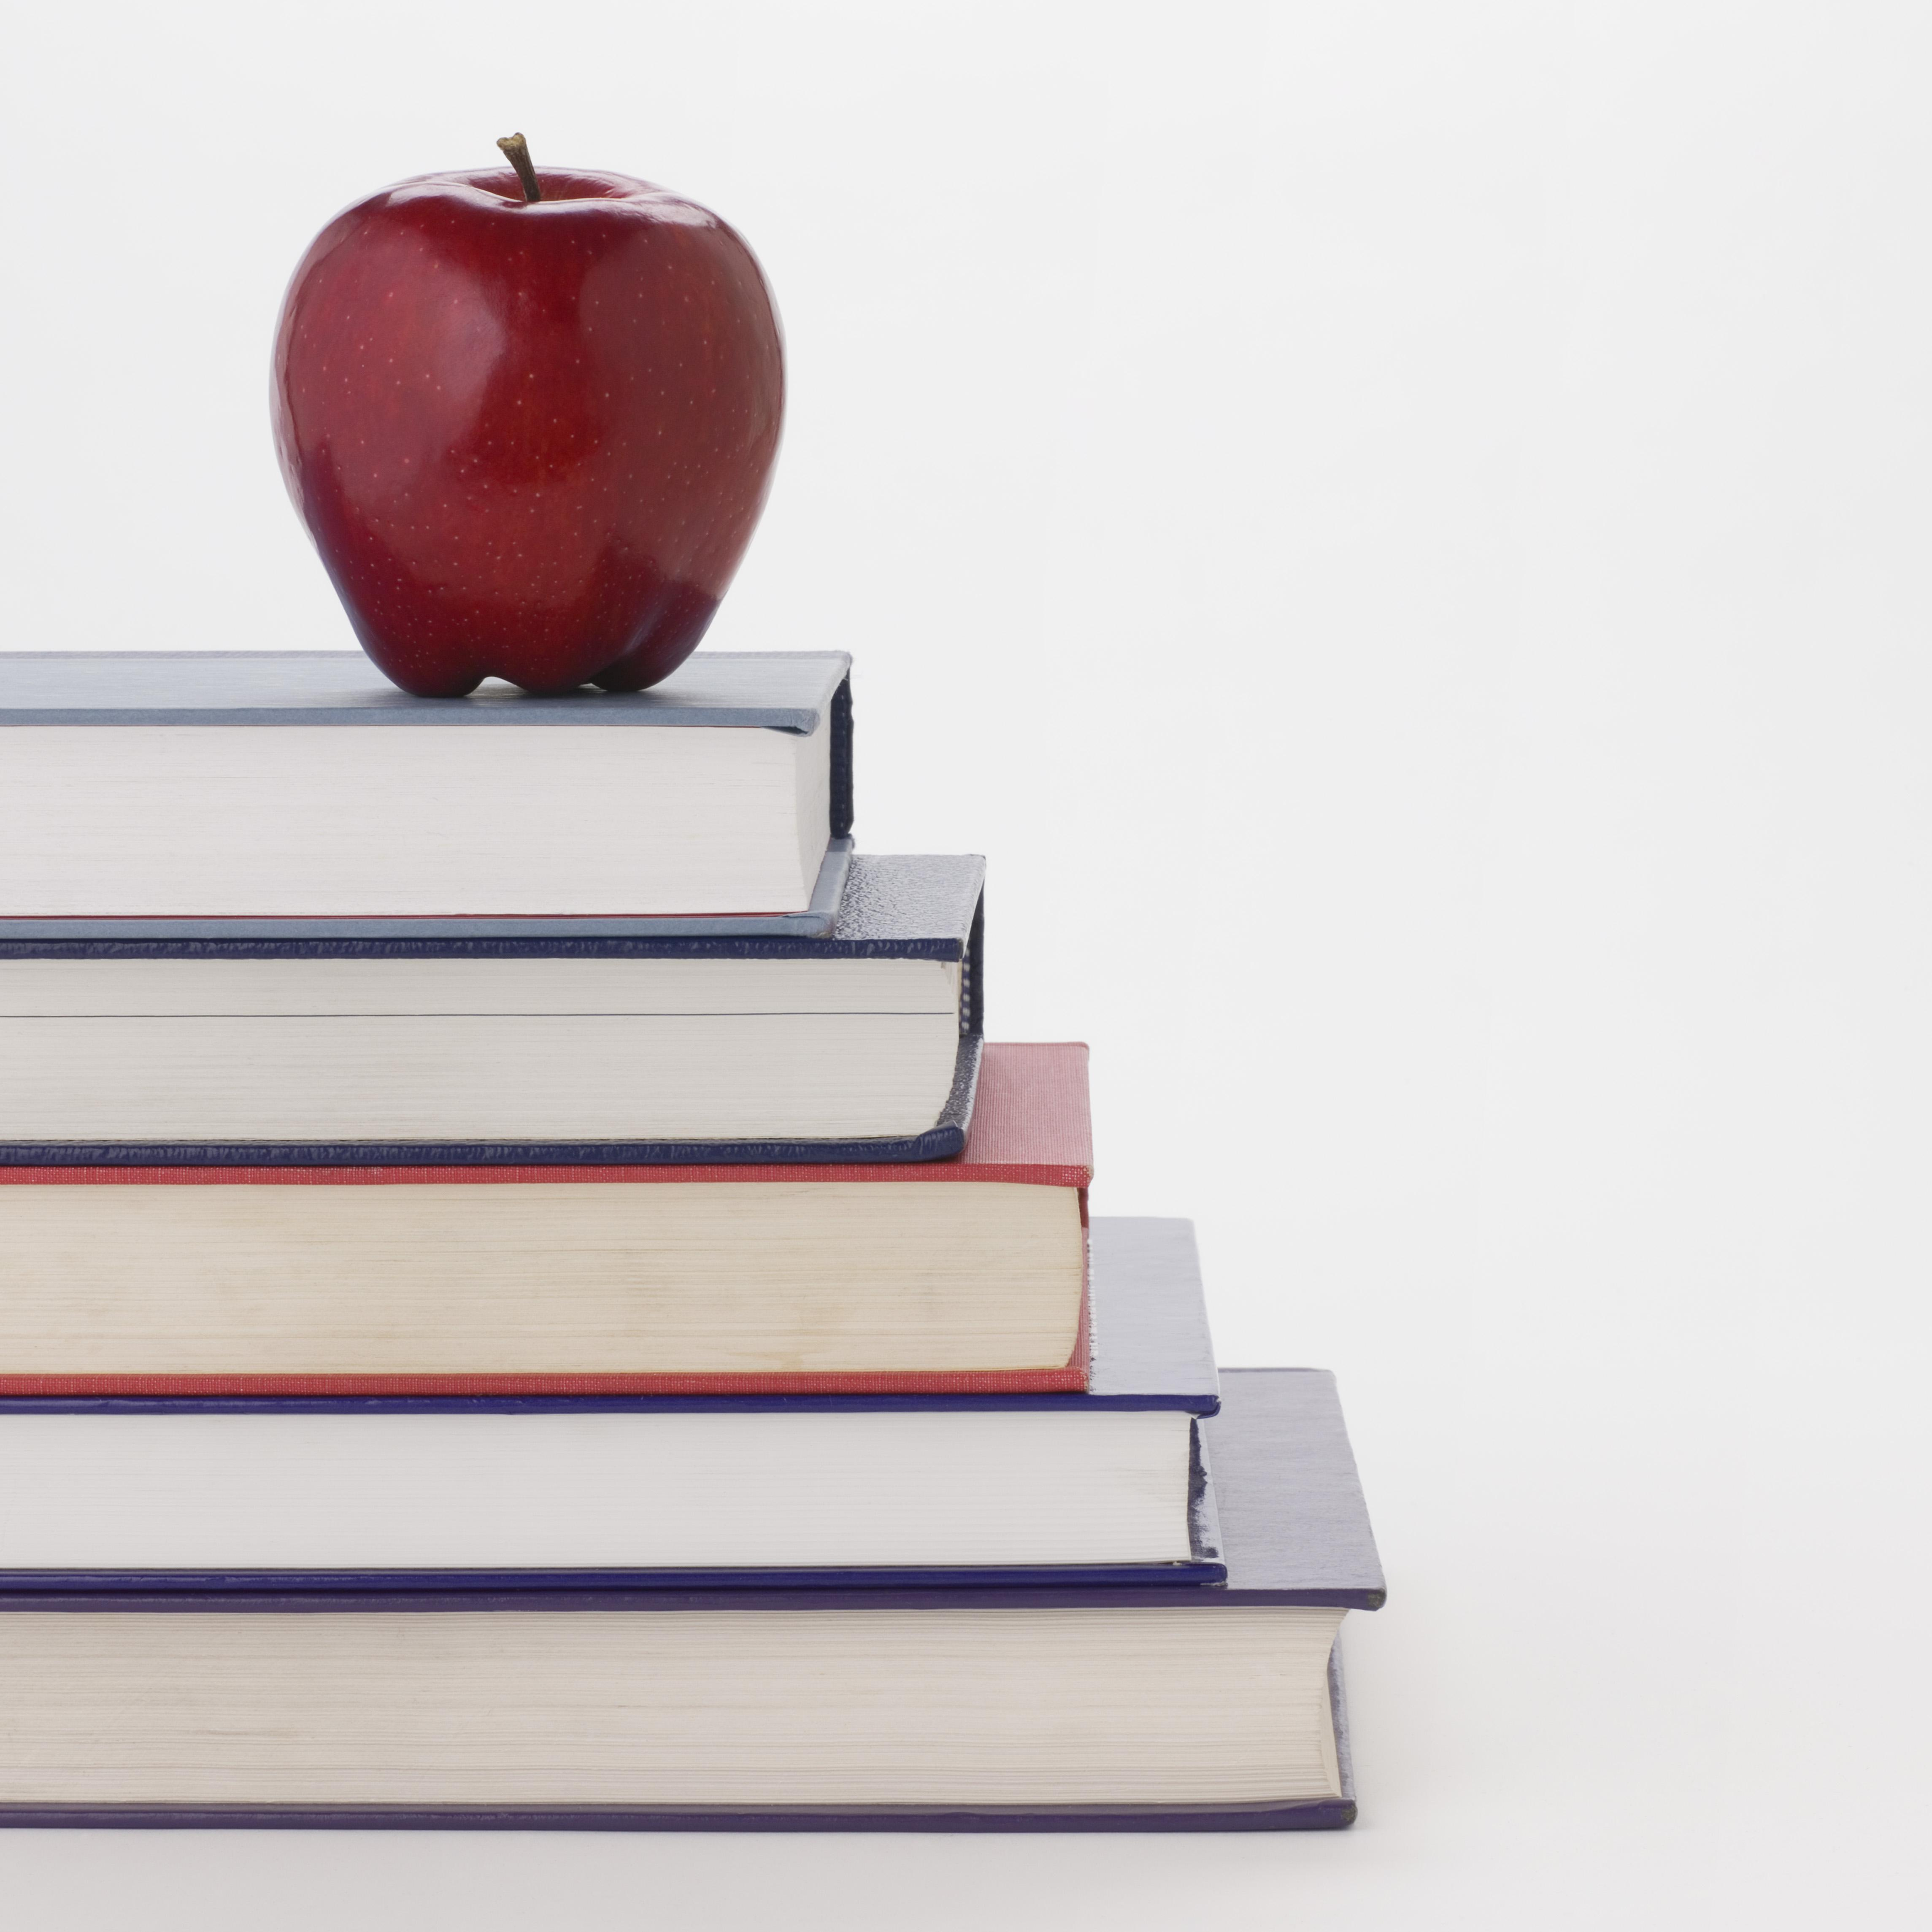 Apple and stack of books